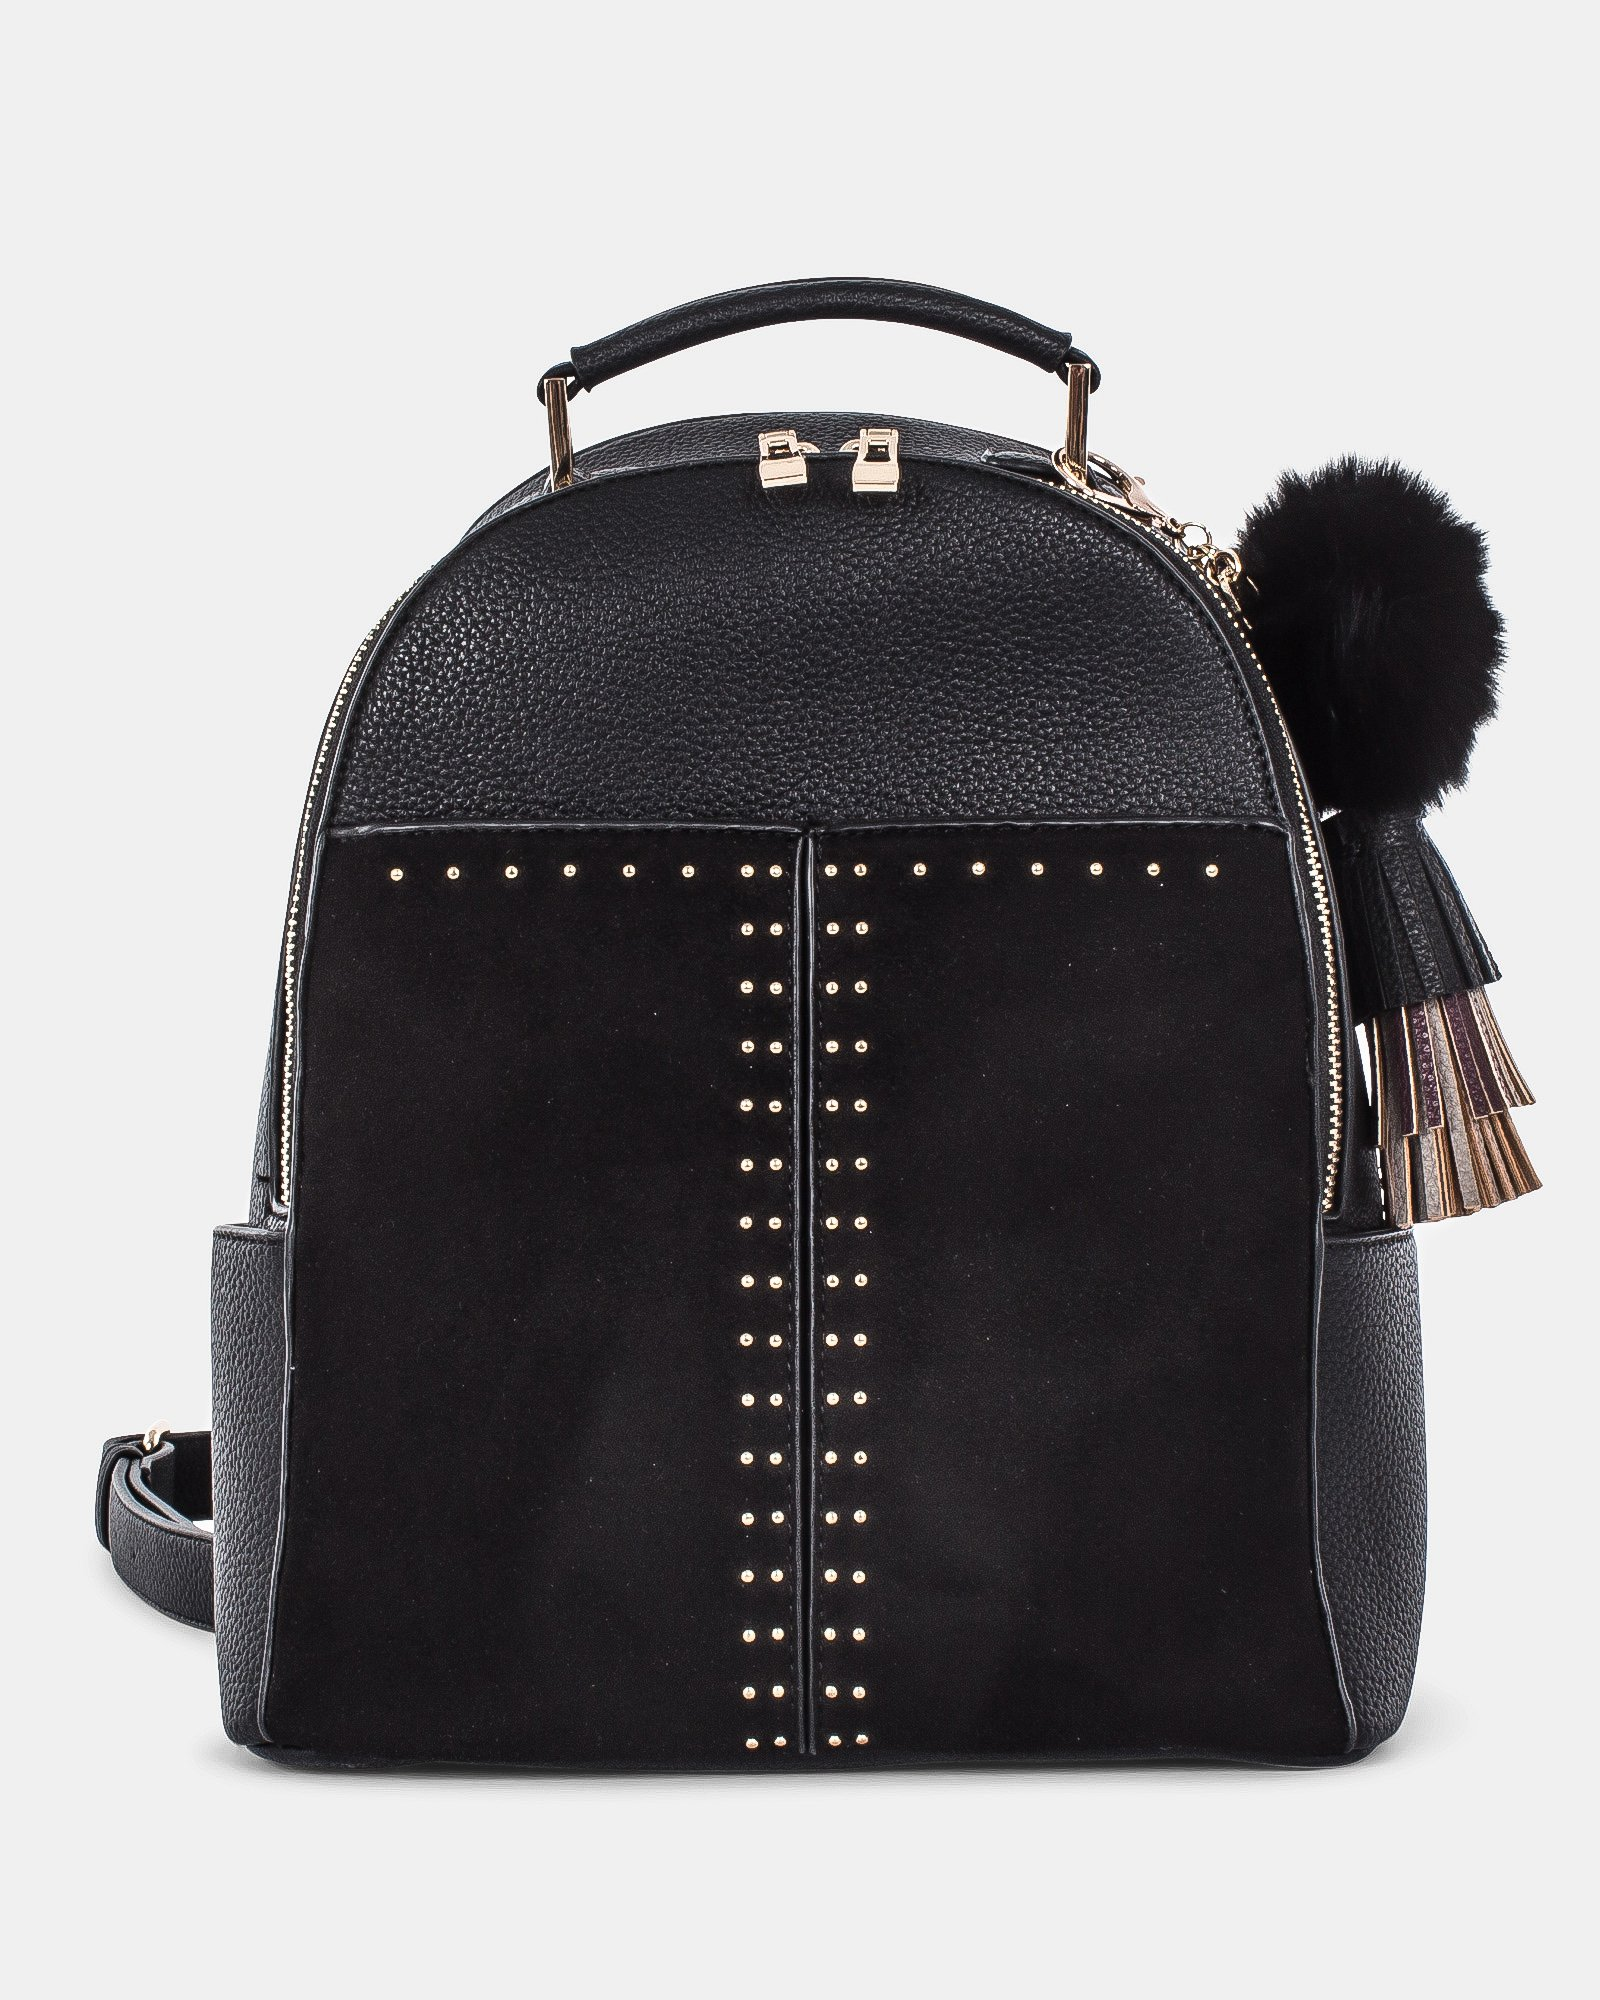 HARMONY - practical and spacious BACKPACK with multiple interior pockets - Black - Céline Dion - Zoom